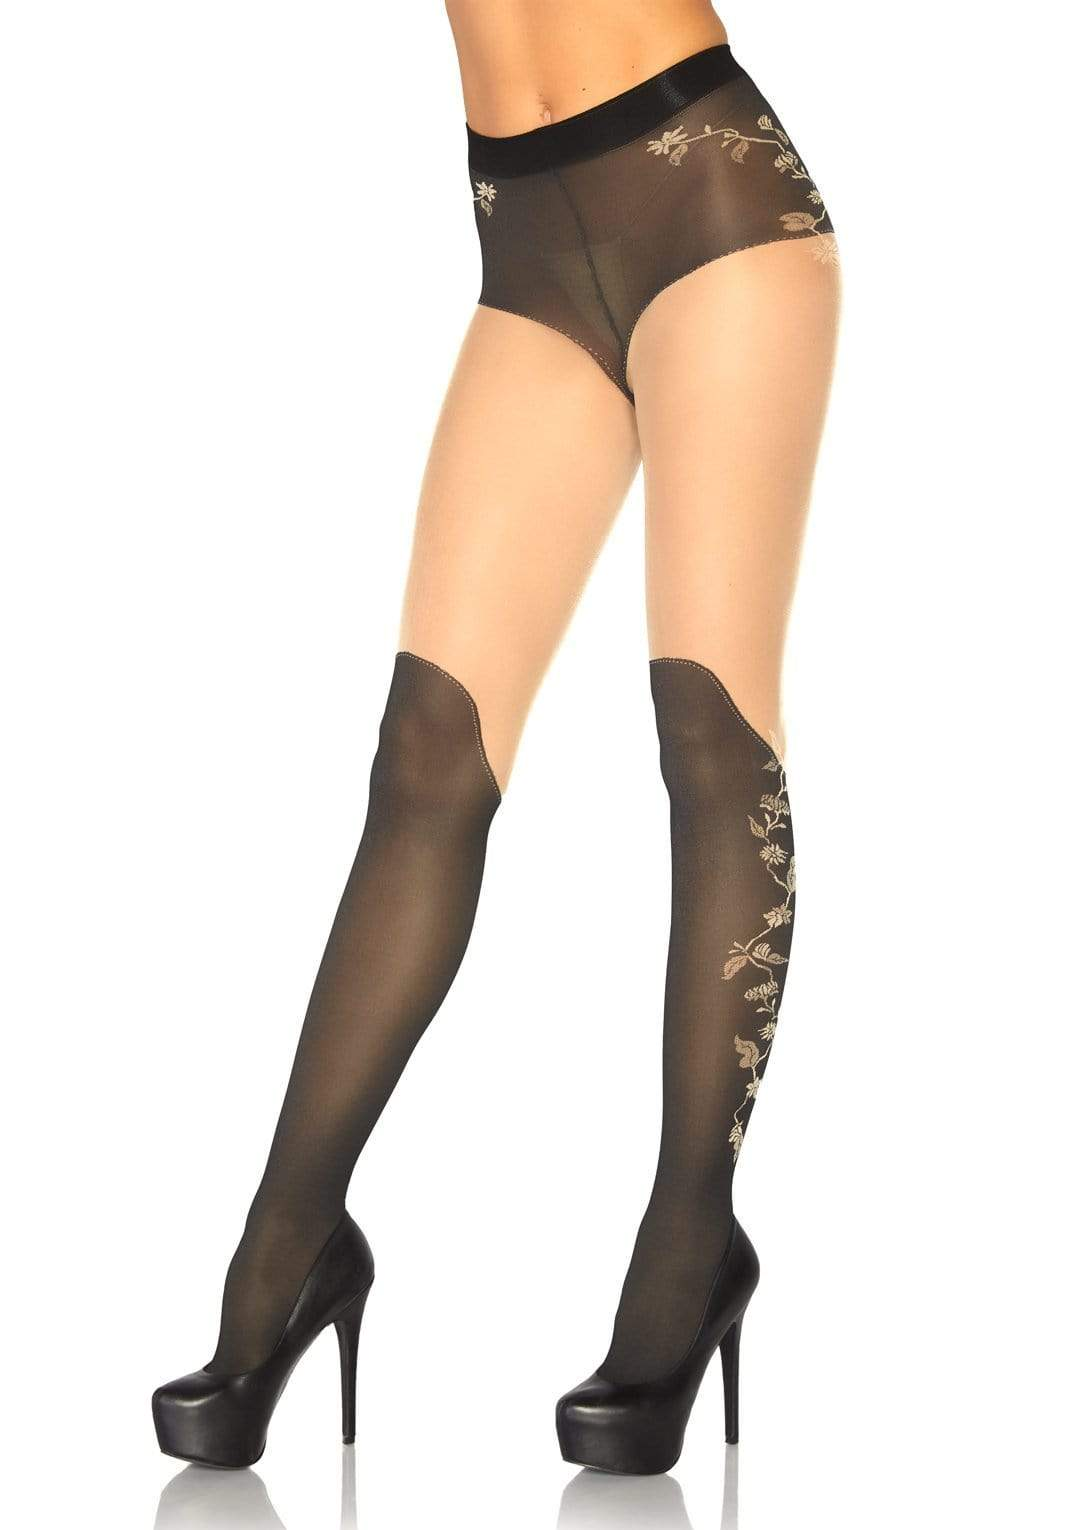 Boot Detail French Cut Pantyhose